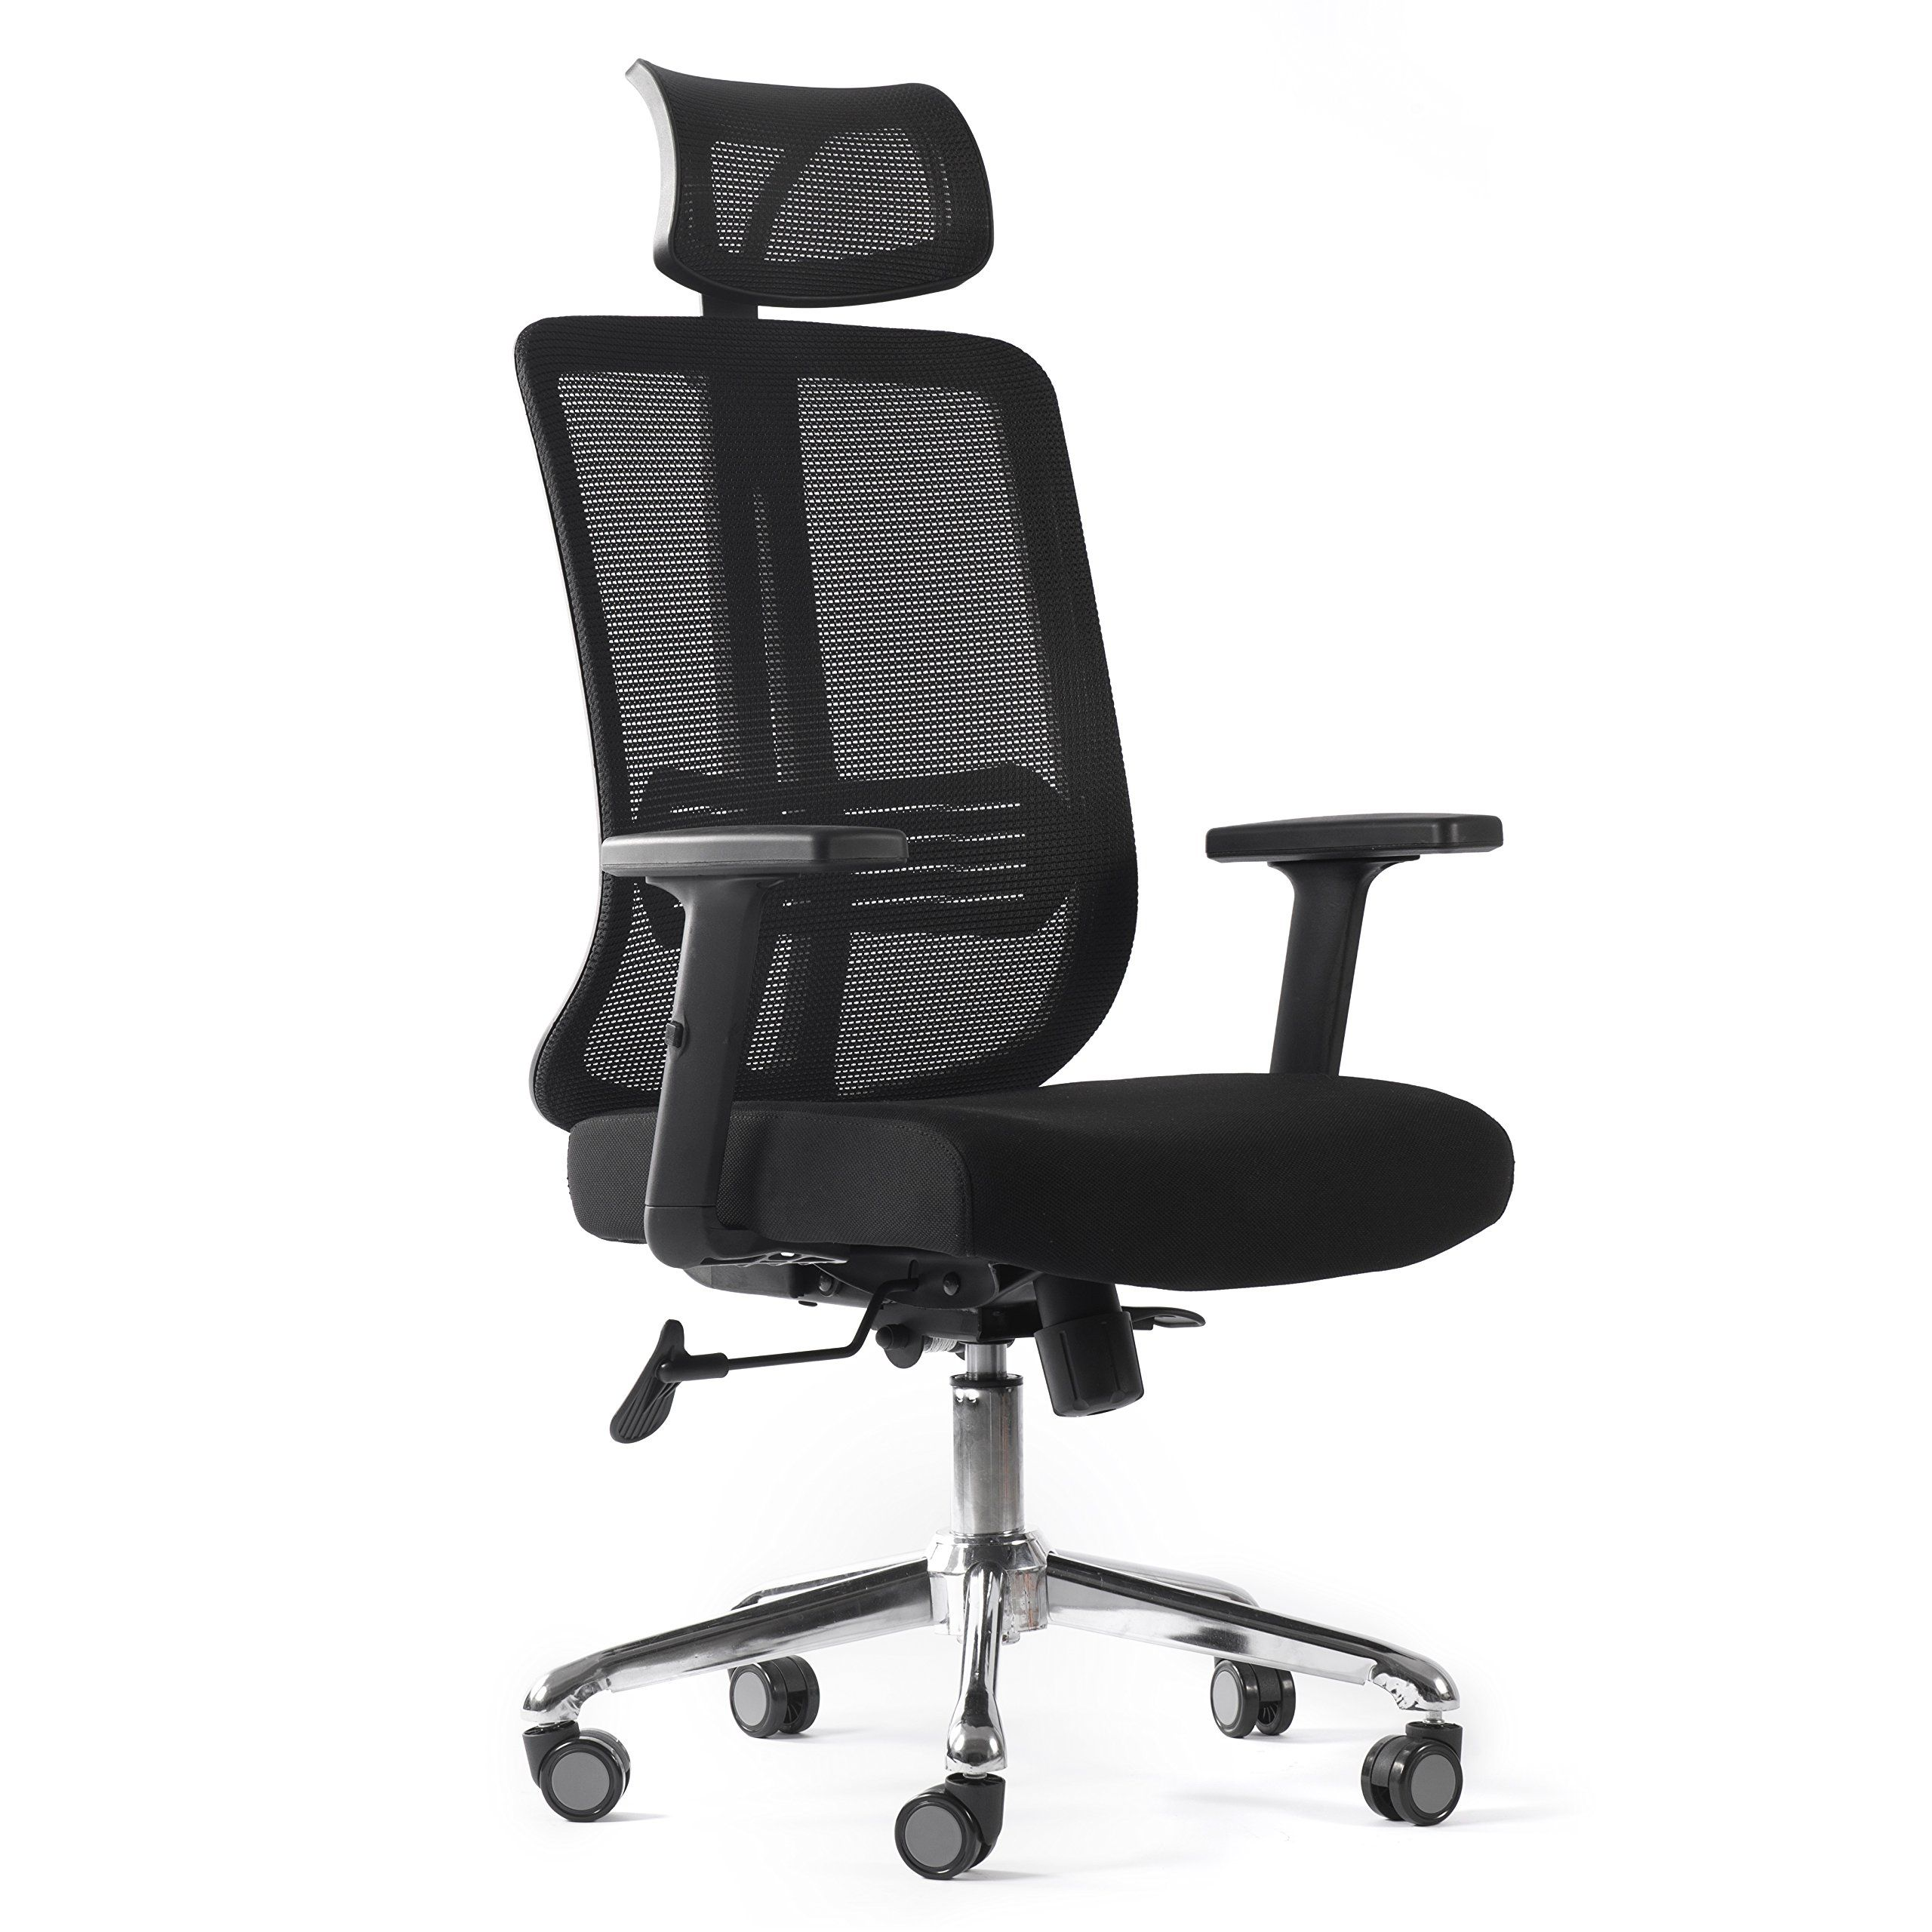 modern white time chair office ergonomic products by grey timeoffice